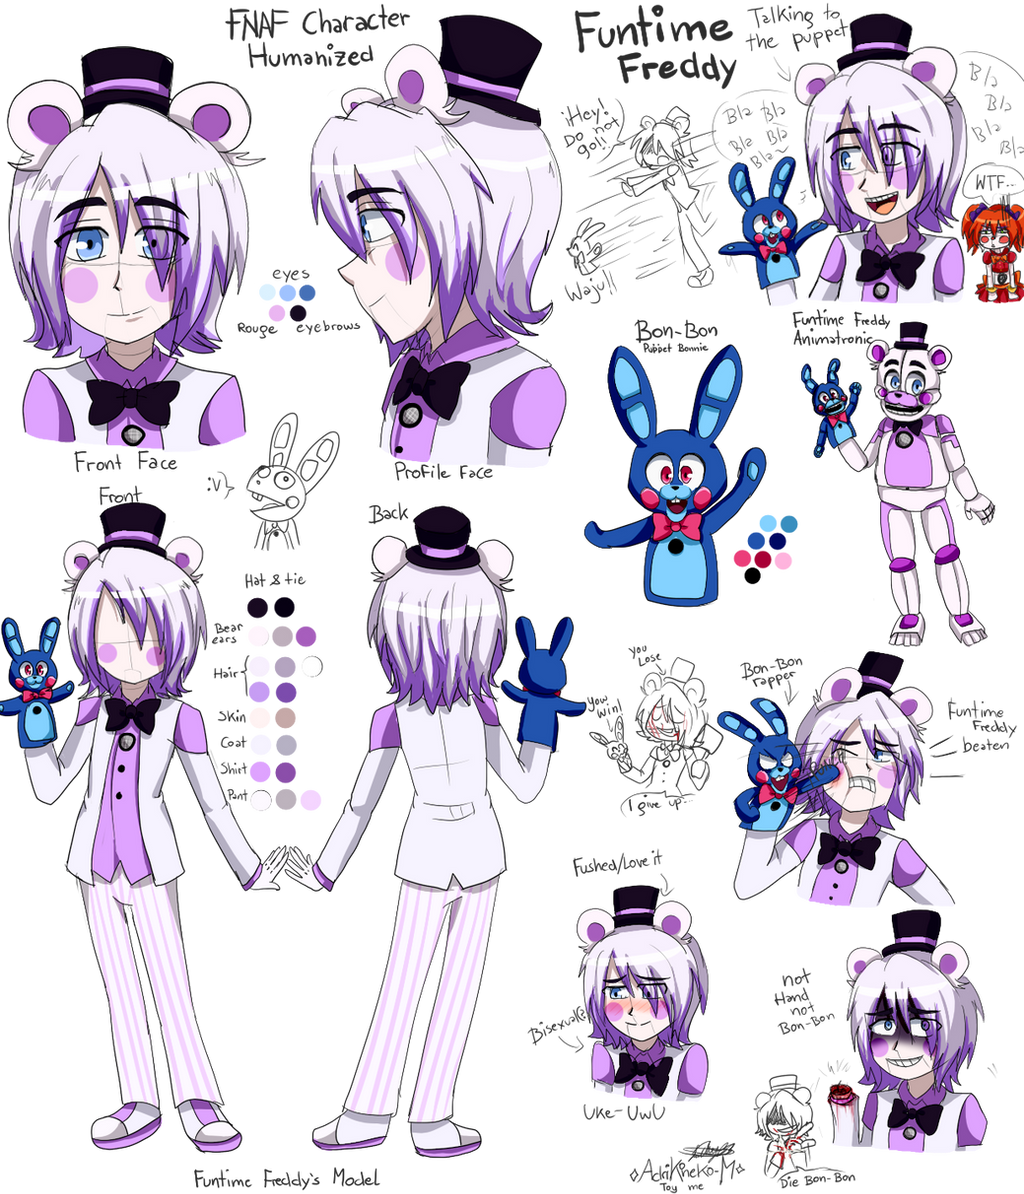 Funtime Freddy Fnaf Sl Humanized By Adrikoneko Mizuiro On